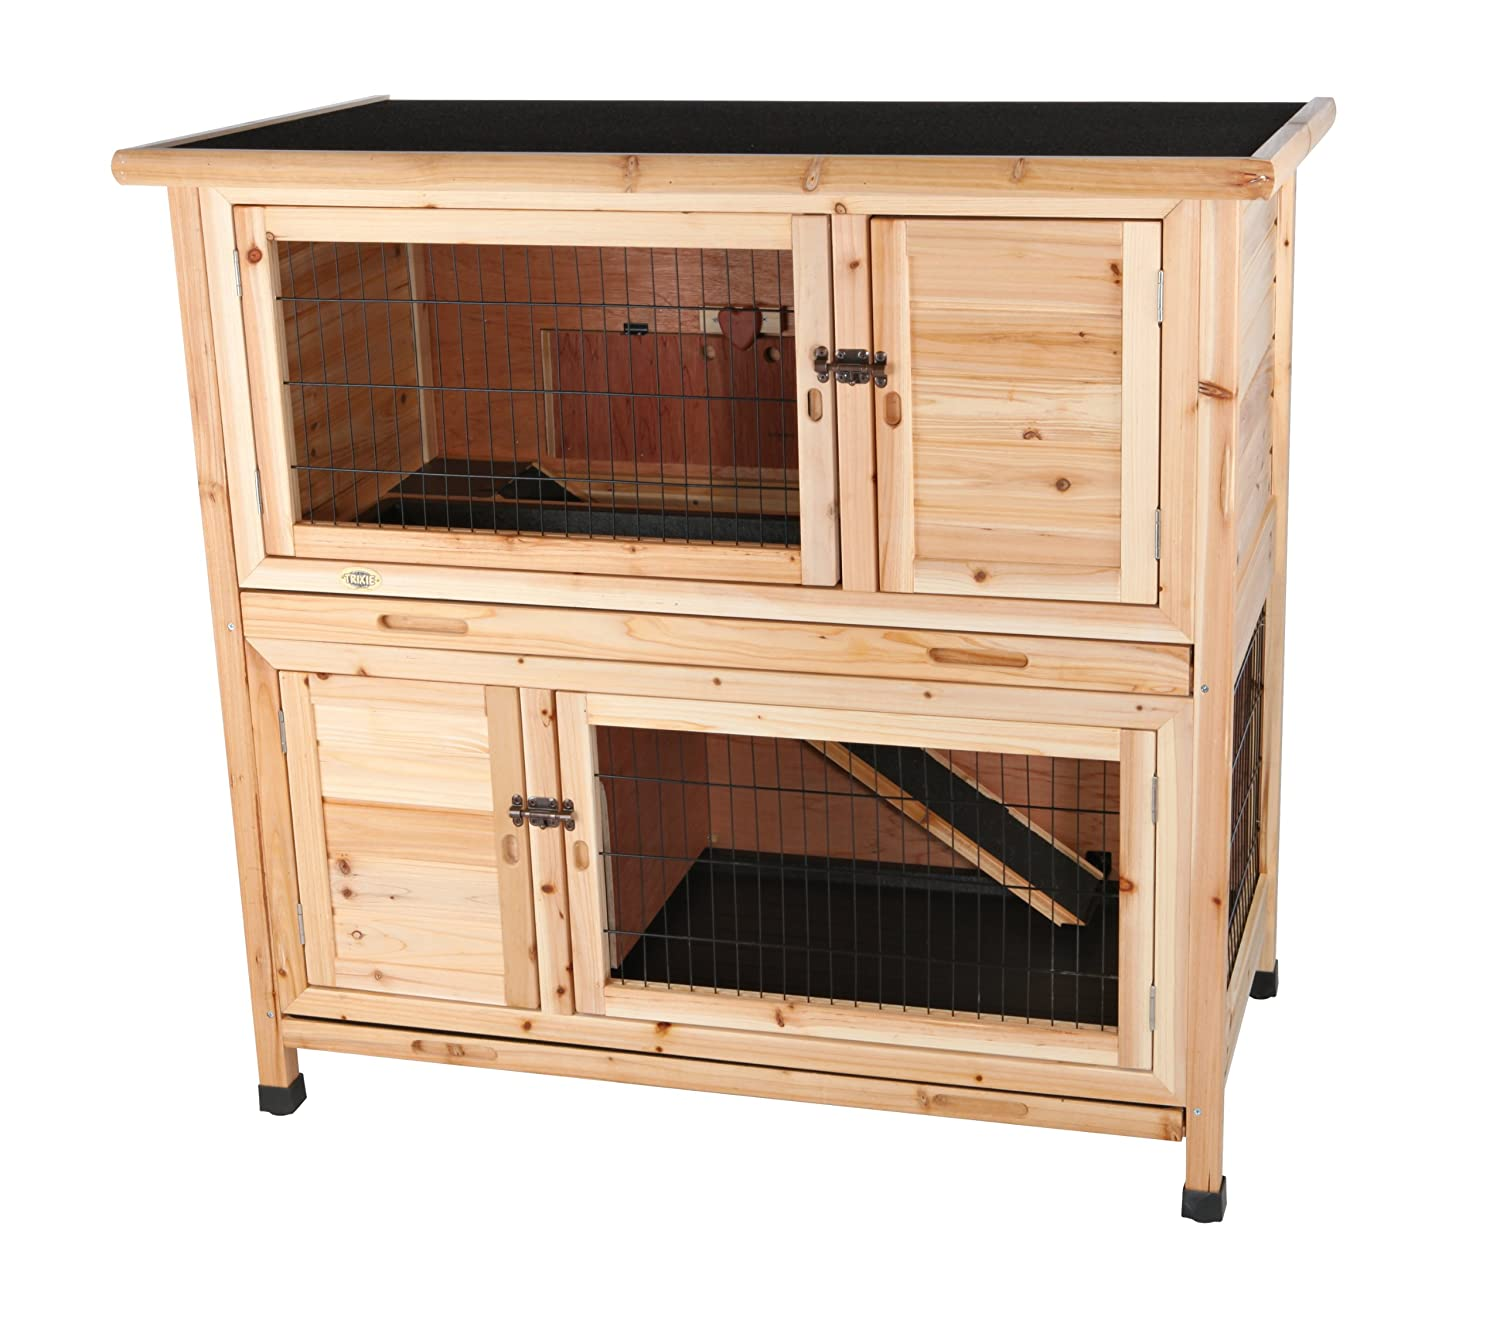 Diy outdoor rabbit hutch plans for sale plans free for Diy hutch plans